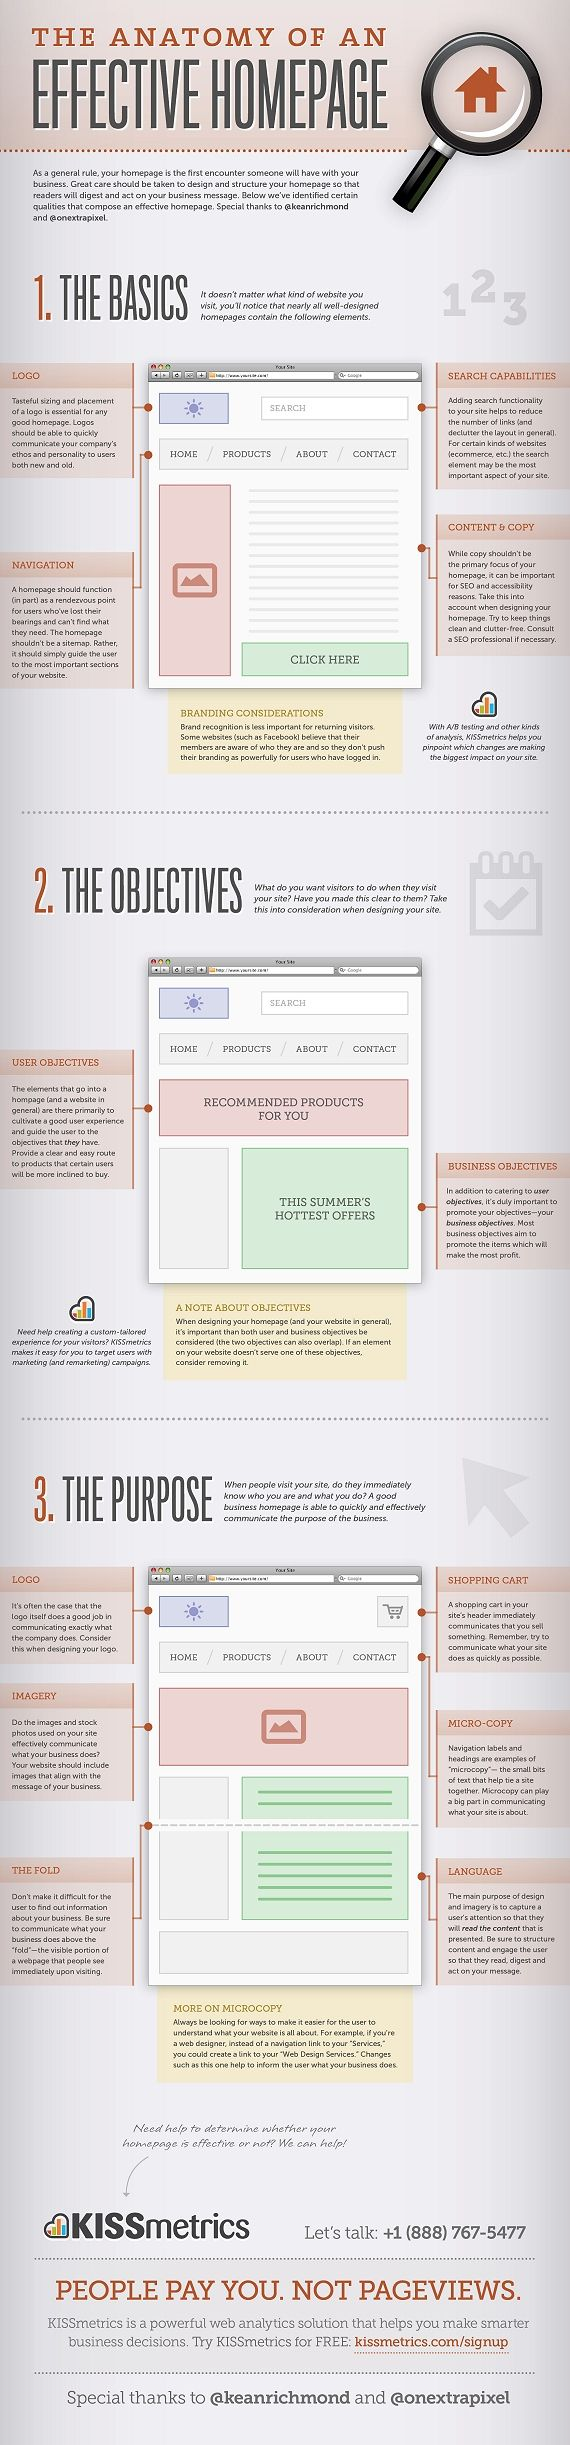 anatomy-of-an-effective-homepage